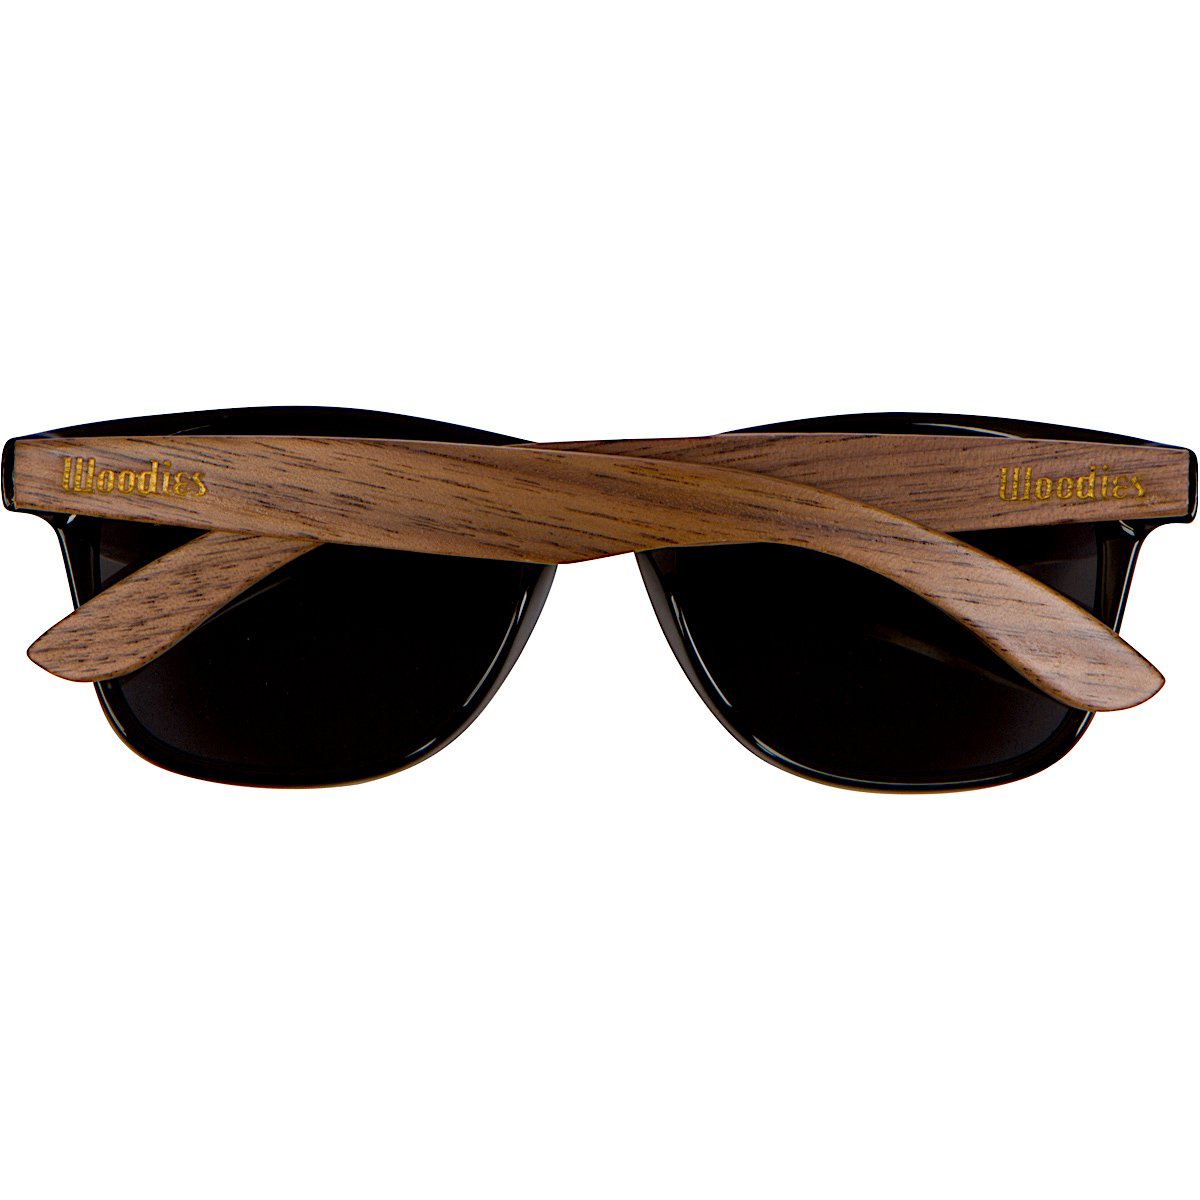 WOODIES Walnut Wood Wayfarer Sunglasses with Polarized Lens in Wood Display Box for Men or Women by Woodies (Image #4)